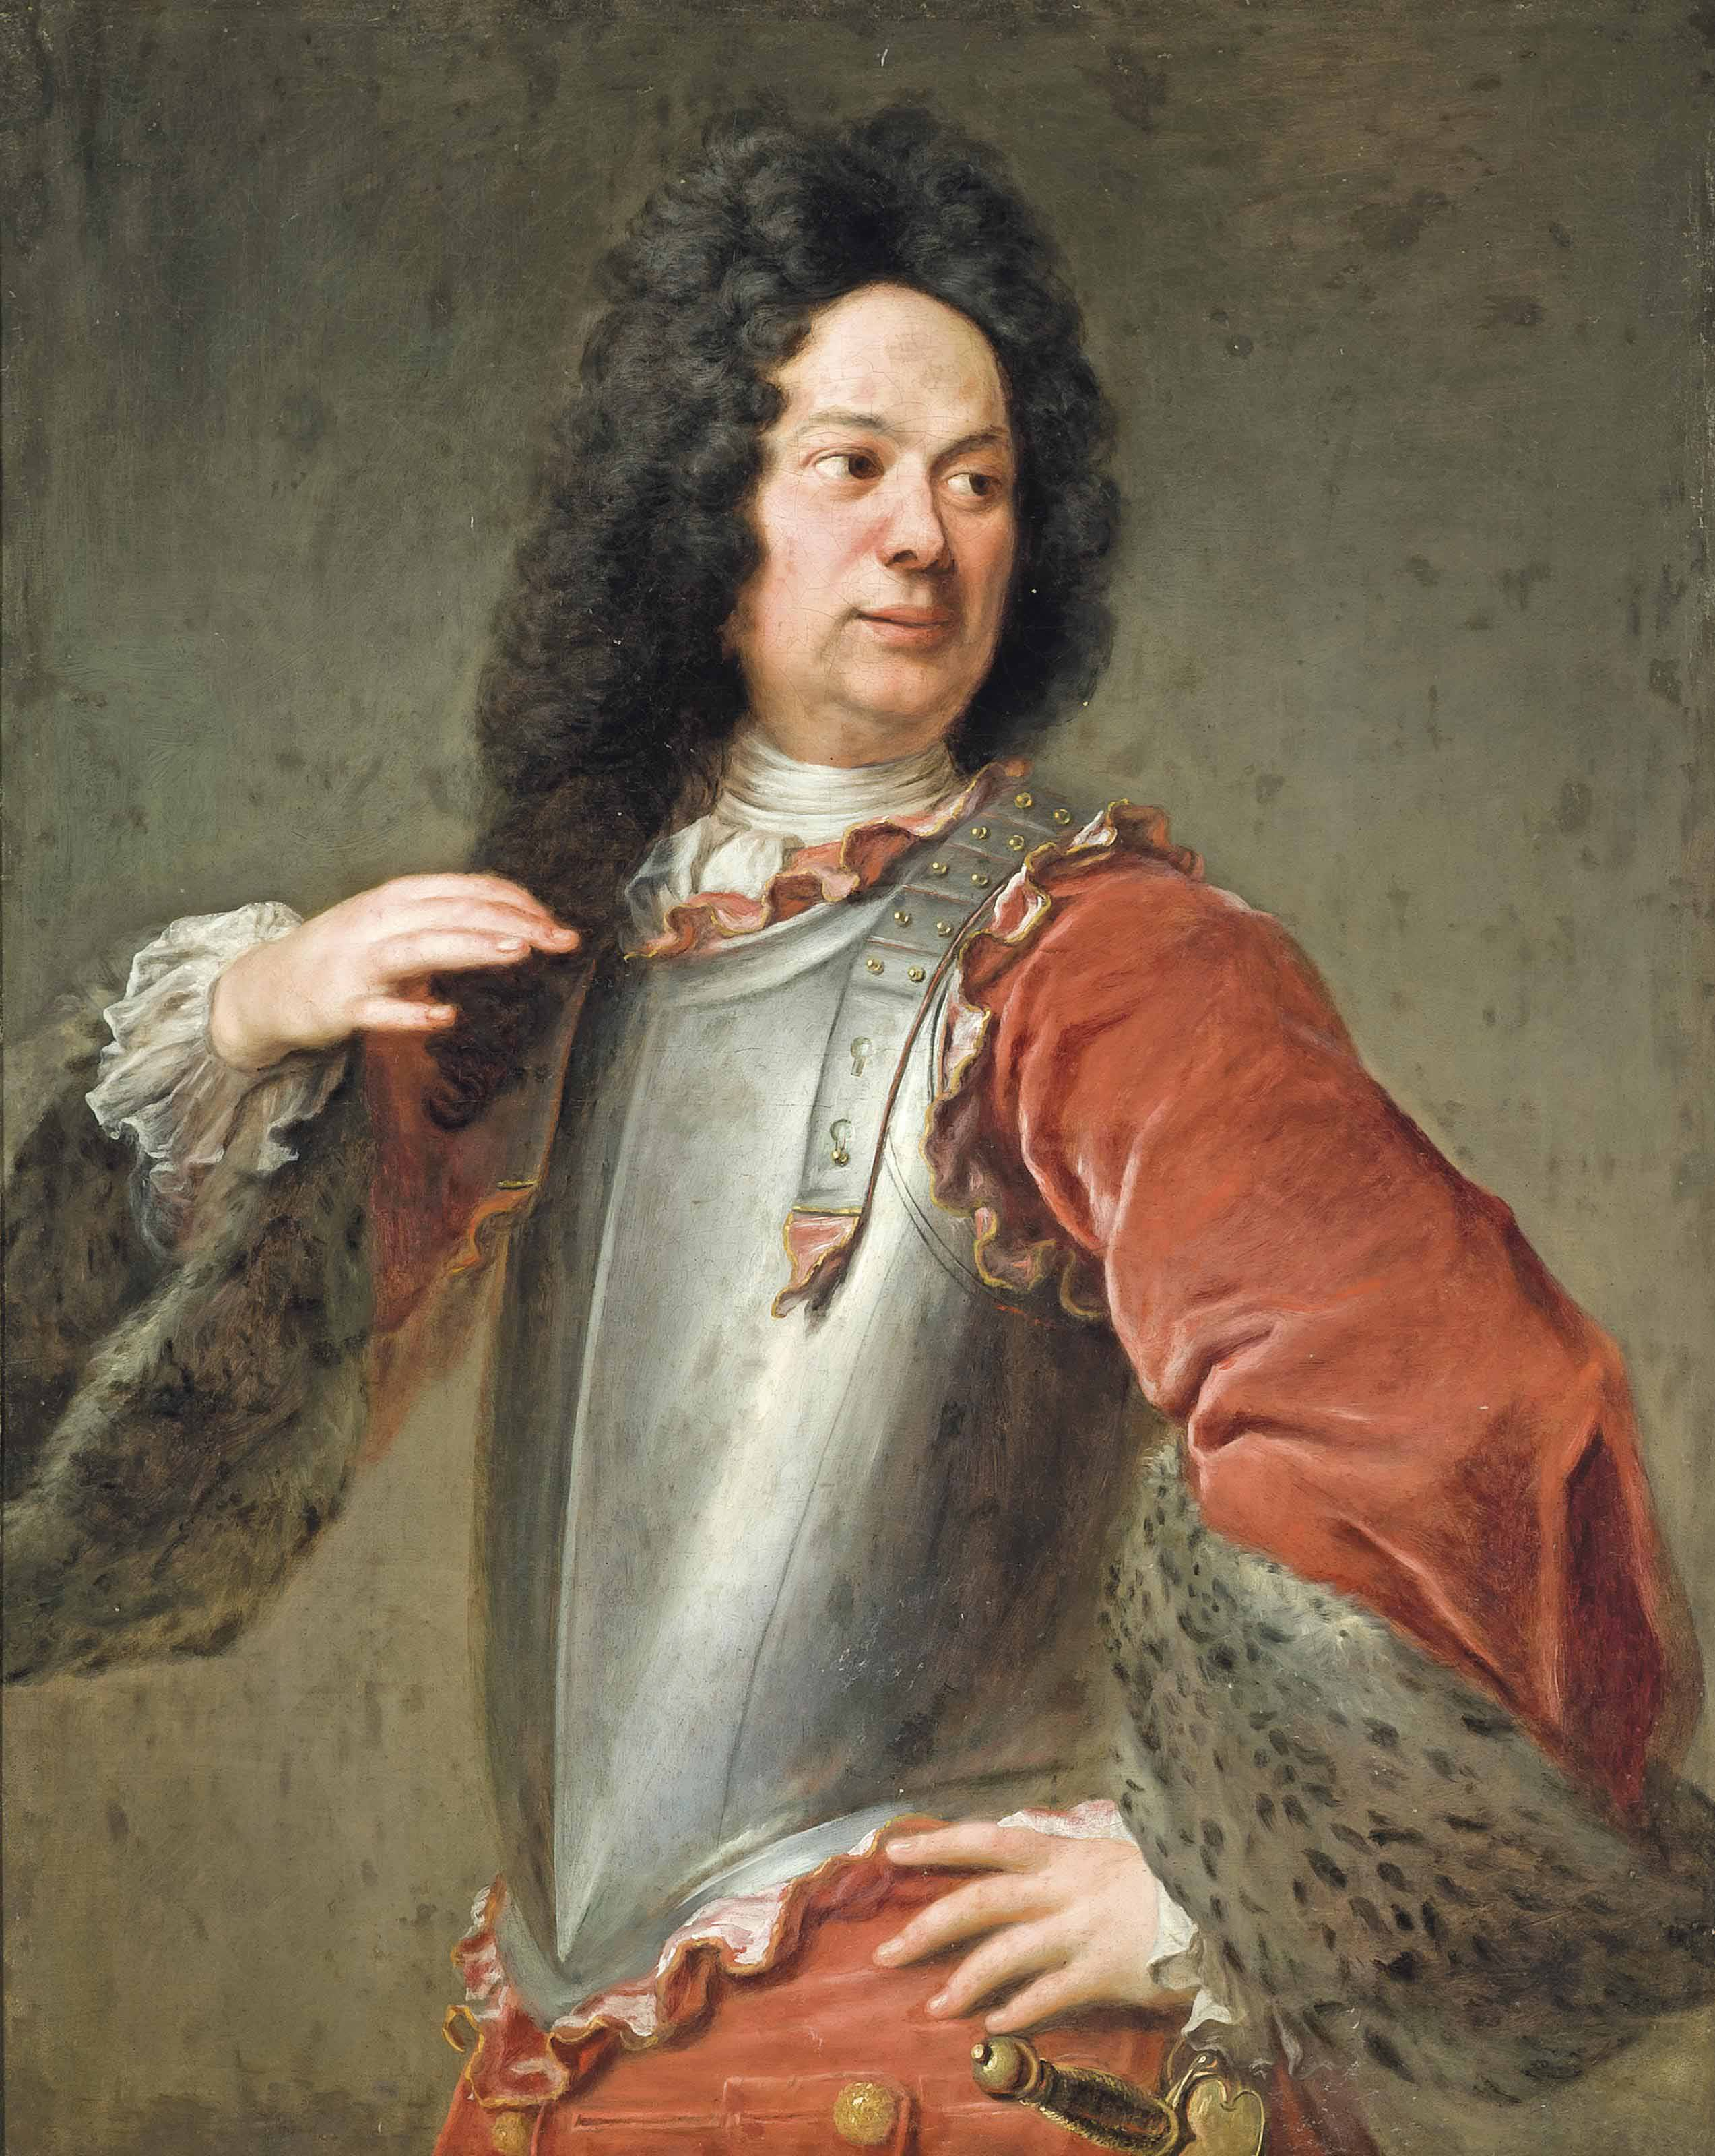 Portrait of a gentleman, half-length, in a breastplate and red coat with fur trim